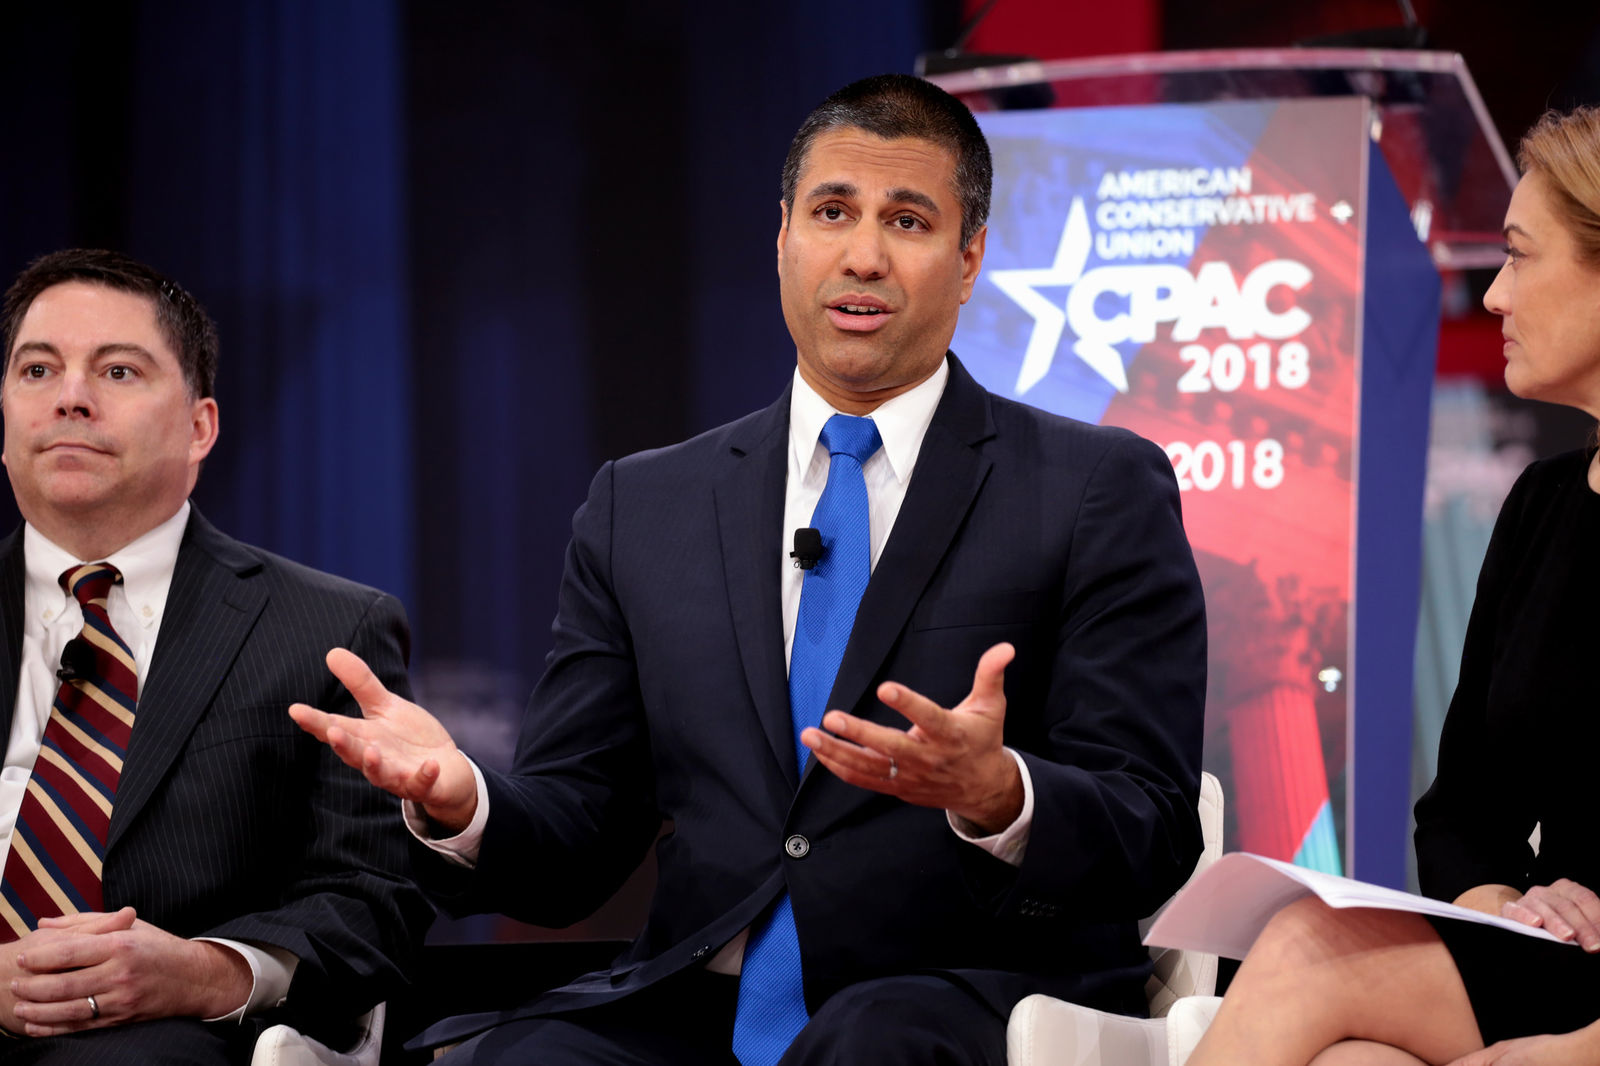 According to #NetNeutrality supporters, the Internet died today. Are they right?